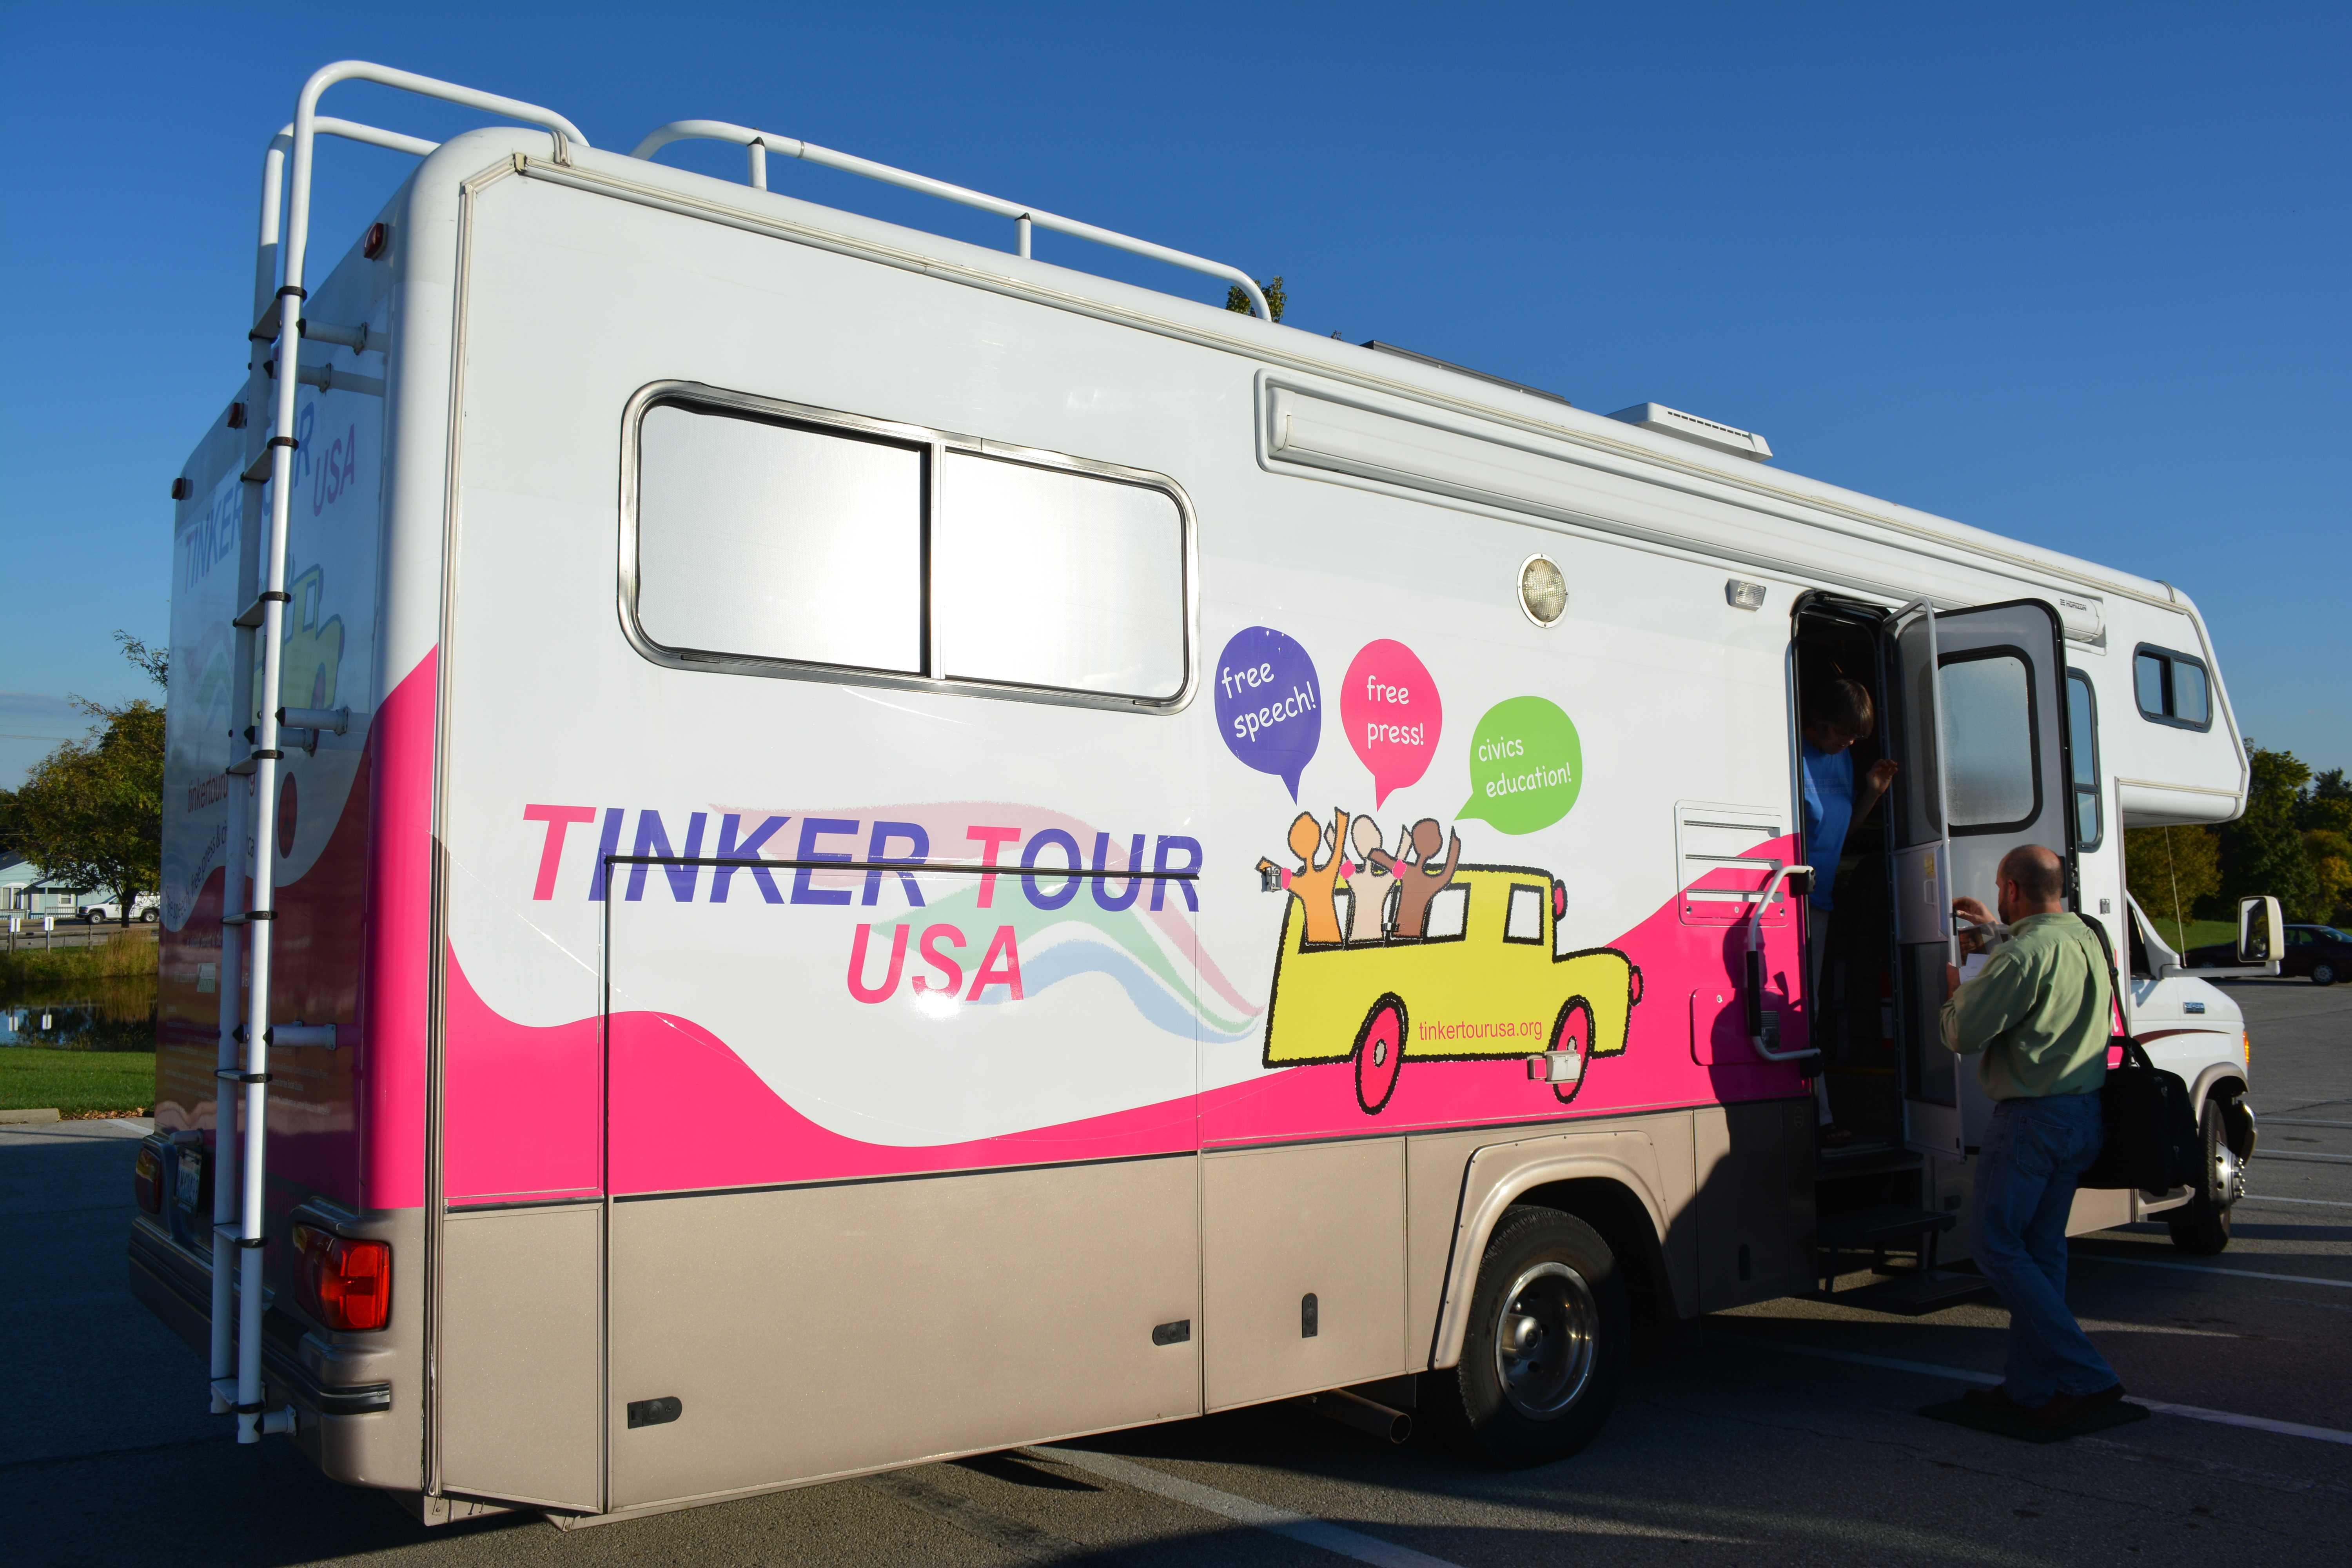 The Tinker Tour USA made a stop at IU Southeast on Oct. 9. Mary Beth Tinker and Mike Hiestand promoted student free speech during a presentation held at the Ogle Center as a Common Experience event.